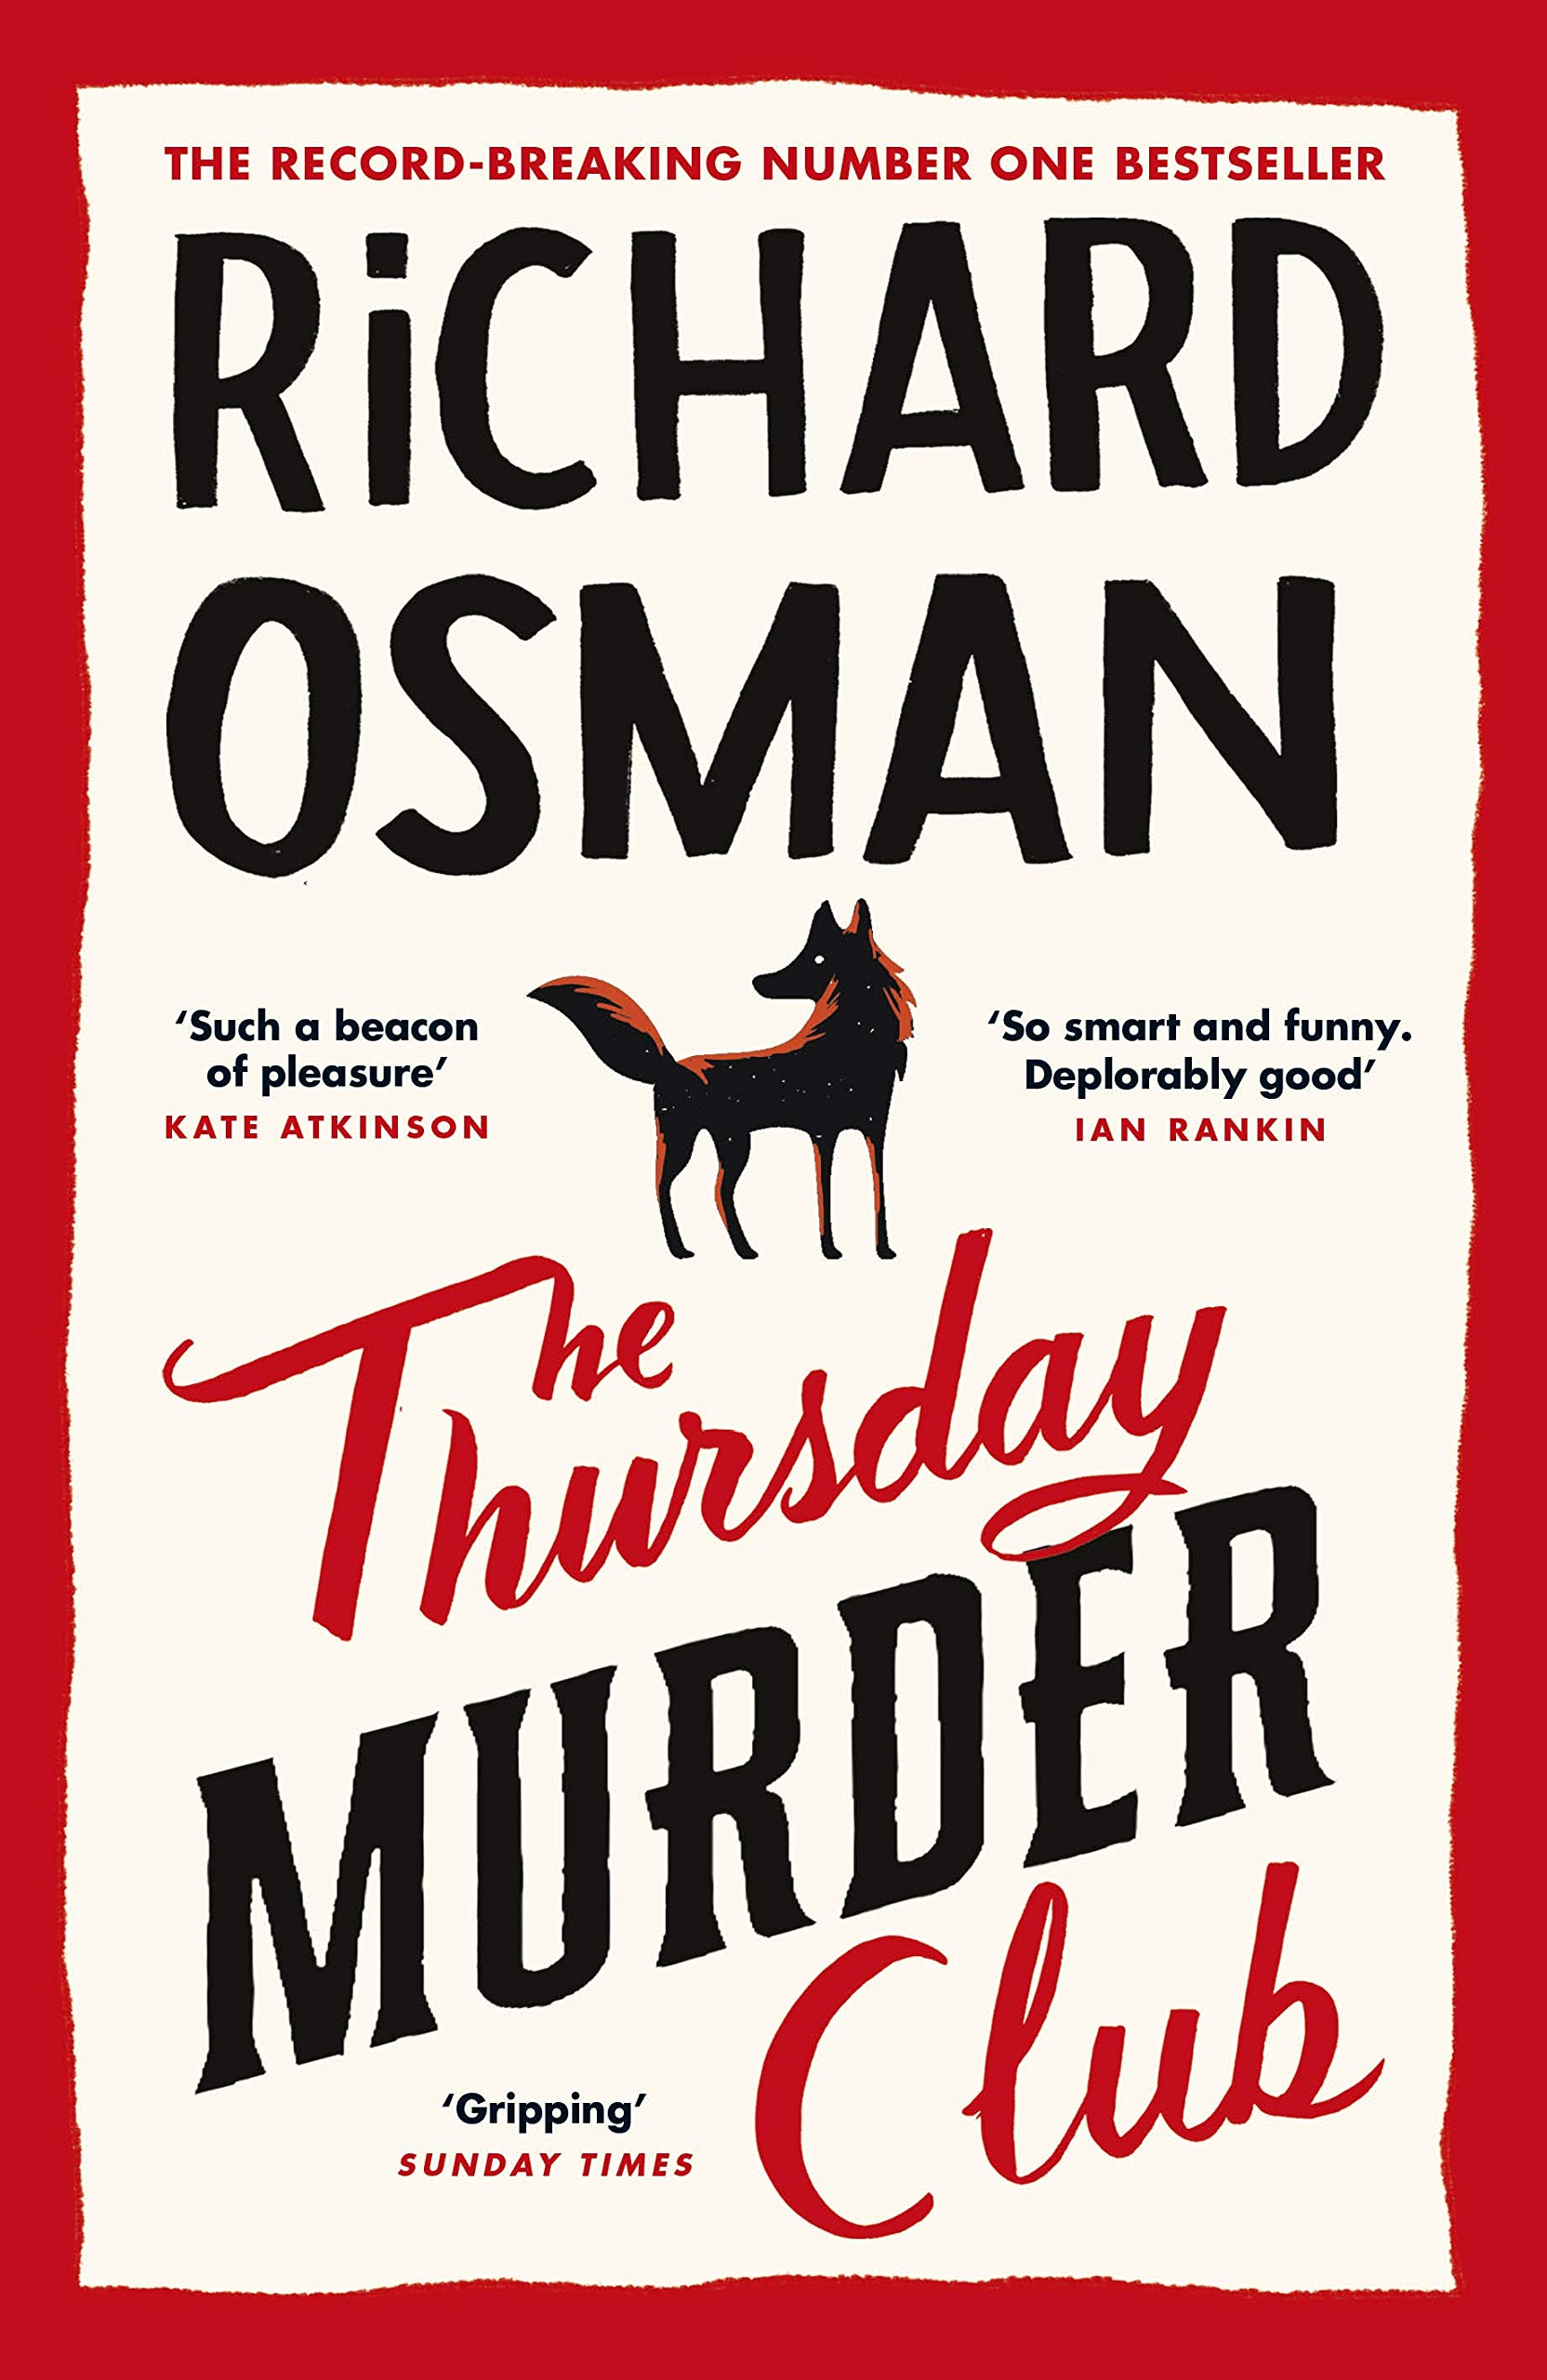 The Thursday Murder Club: The Record-Breaking Sunday Times Number One  Bestseller: Amazon.co.uk: Osman, Richard: 9780241425442: Books